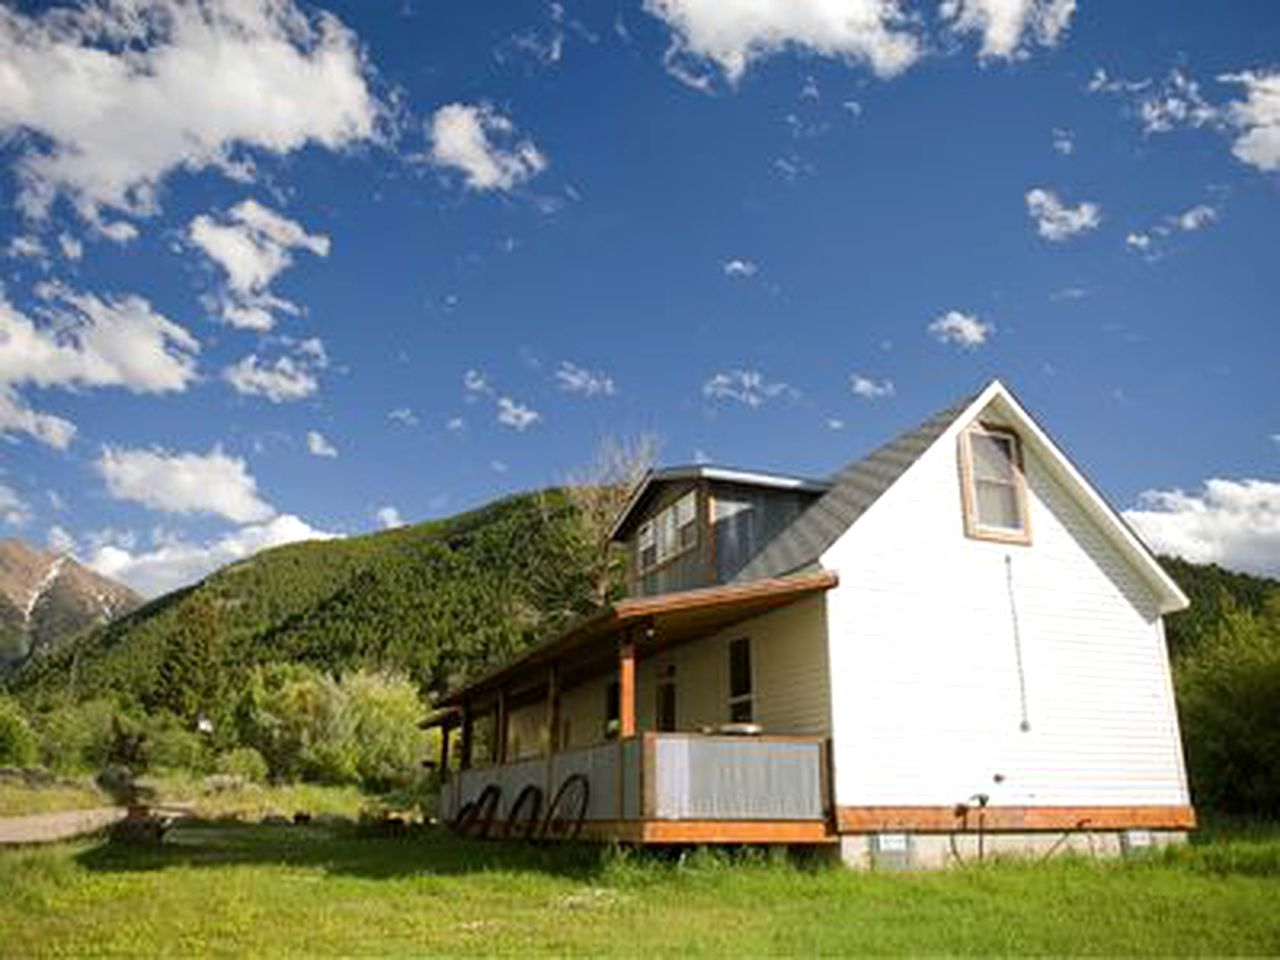 Cabins (Pray, Montana, United States)